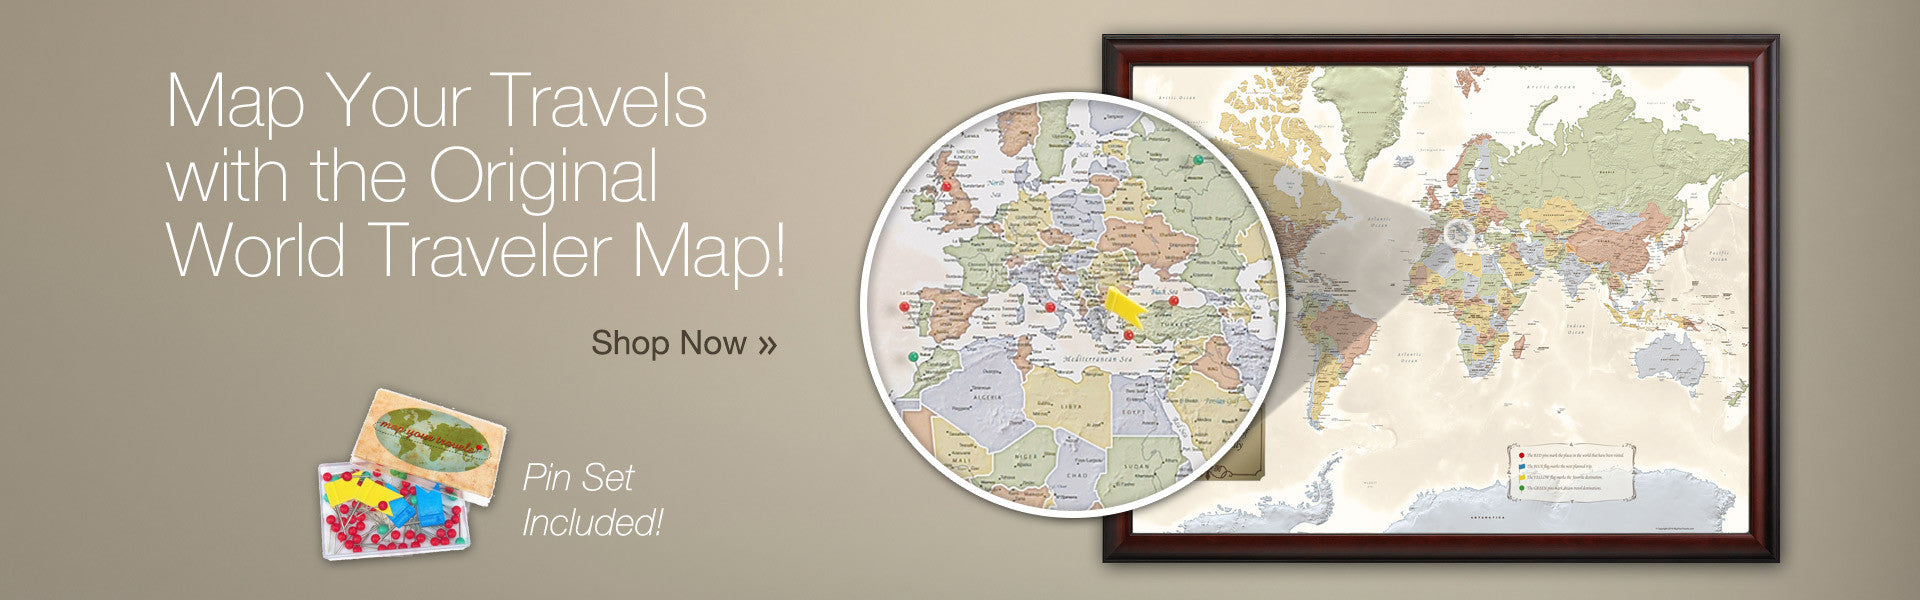 MapYourTravels Home of the Original Travel Map Series – Personalized World Traveler Map Set